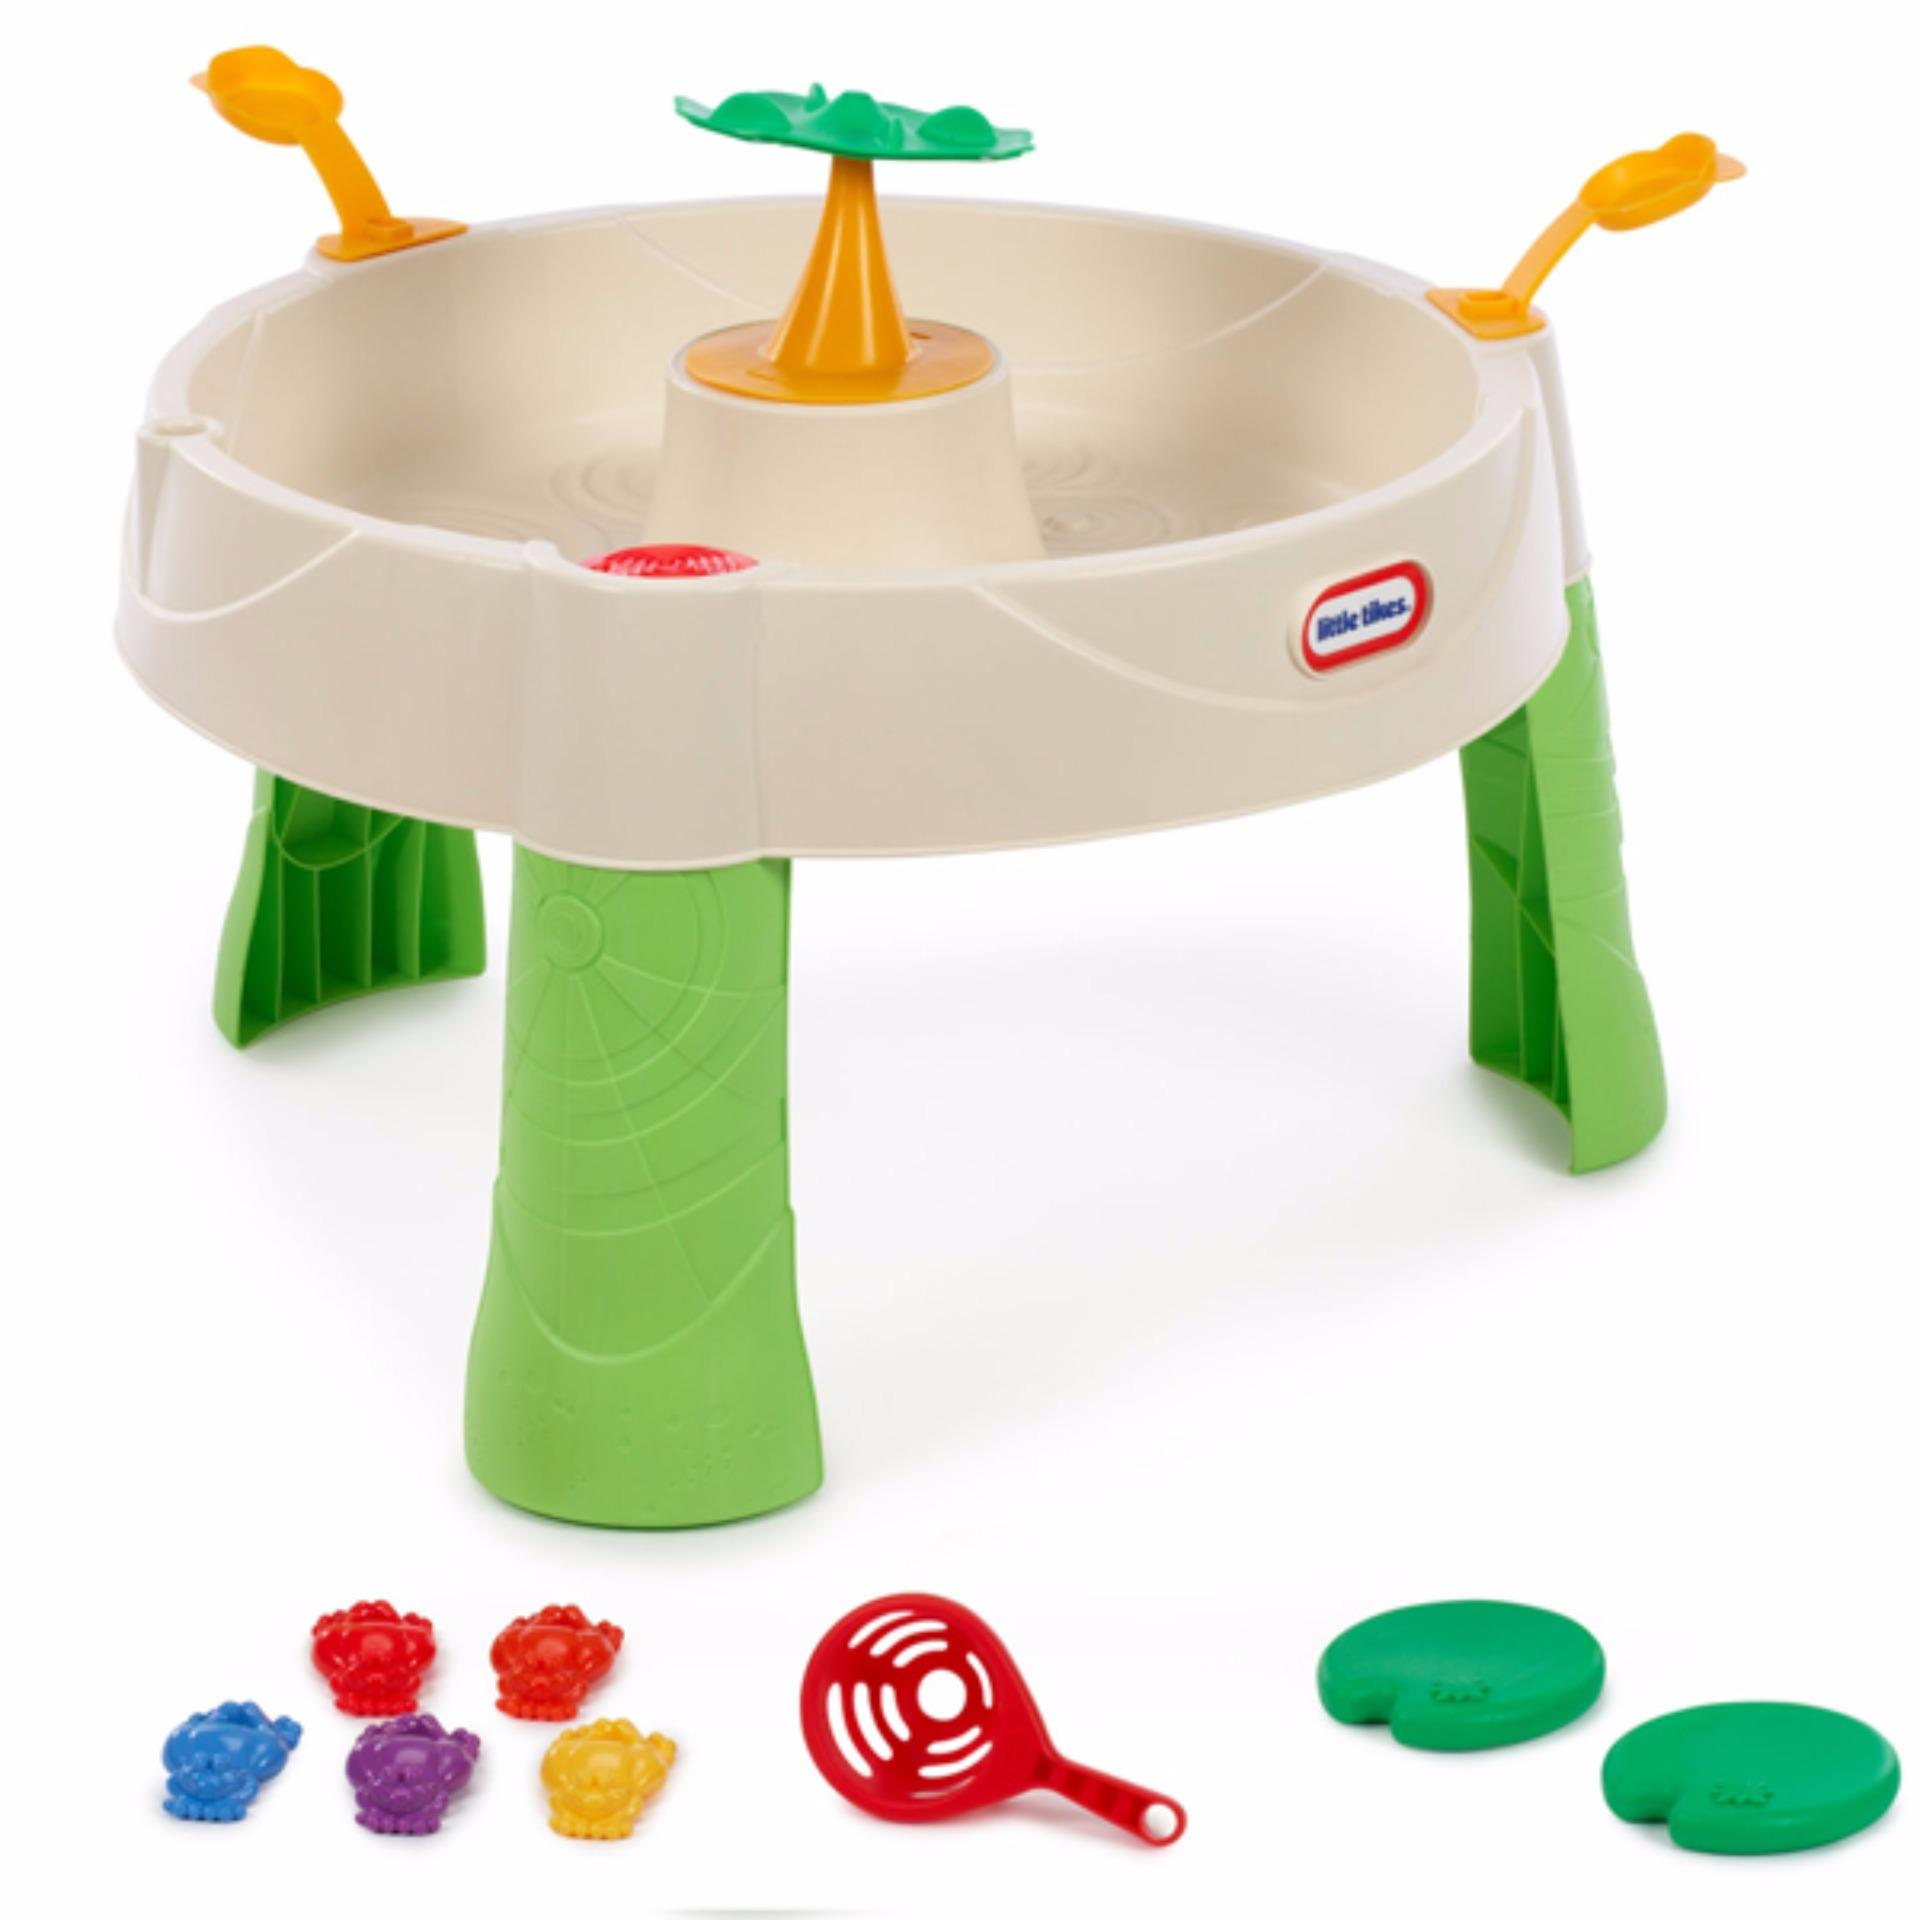 Latest Little Tikes Toys & Games Products | Enjoy Huge Discounts ...